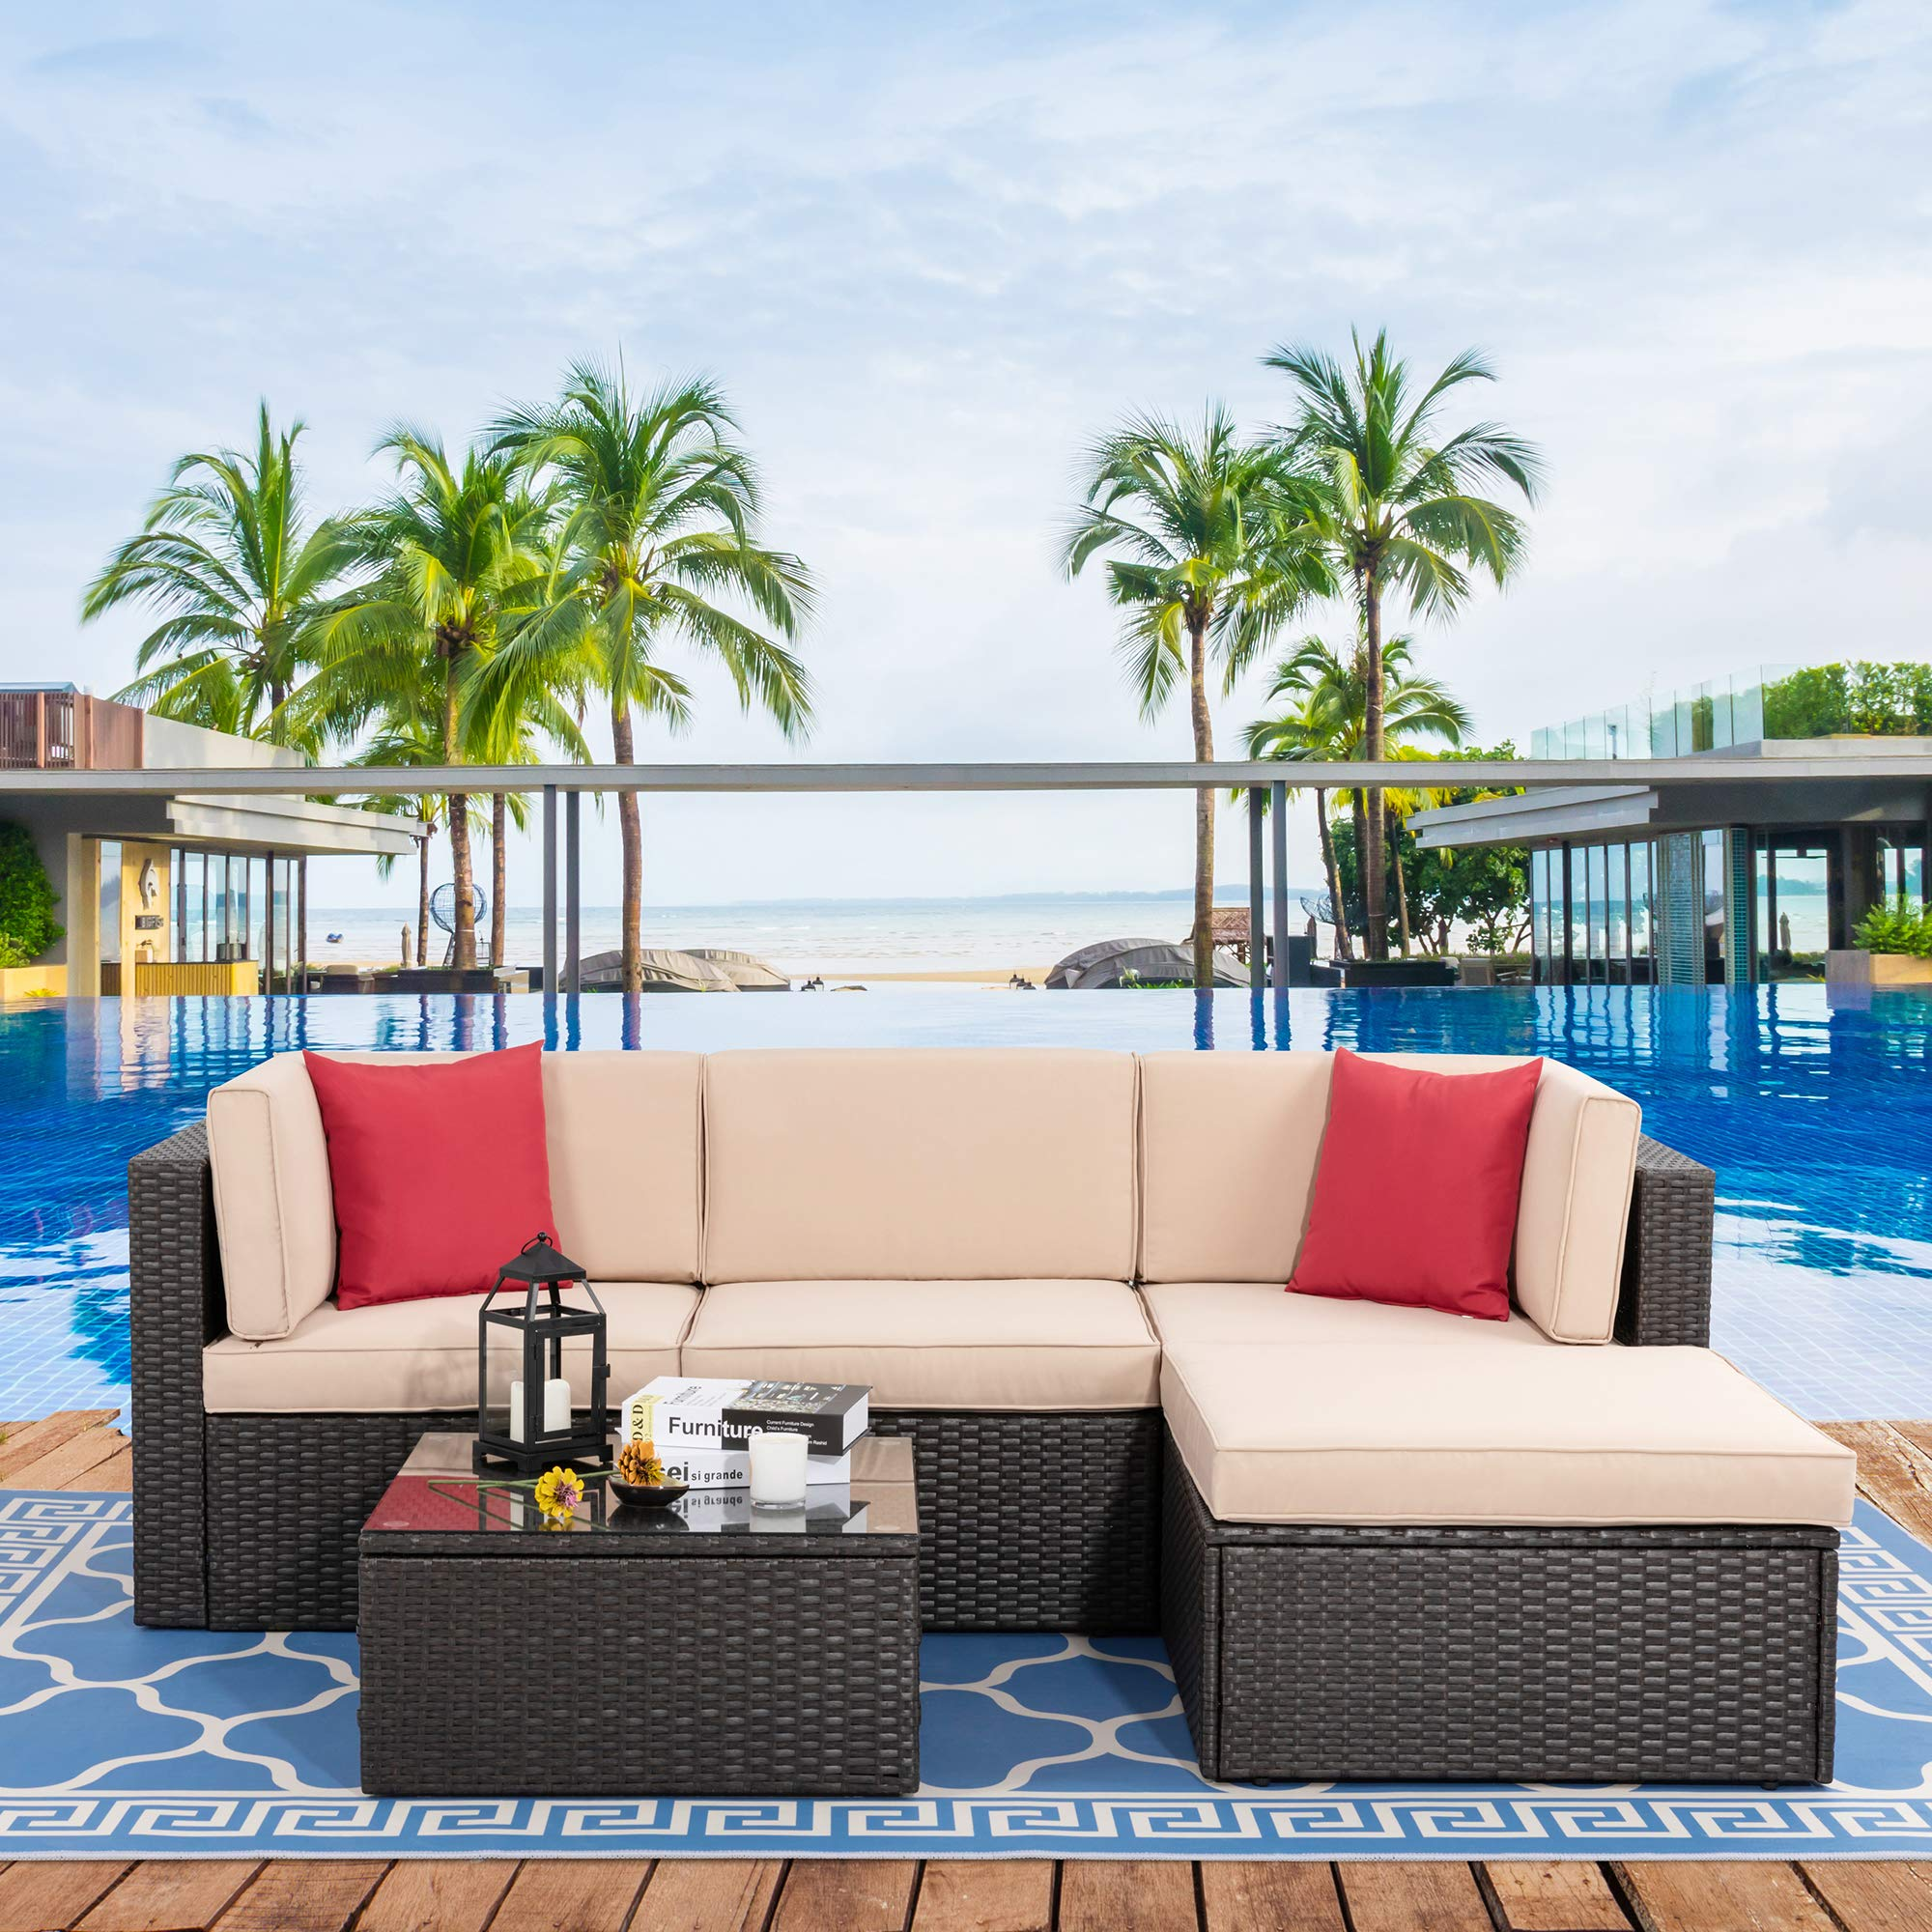 Vongrasig 5 Piece Patio Furniture Sets, All-Weather Brown PE Wicker Outdoor Couch Sectional Patio Set, Small Patio Conversation Set Garden Patio Sofa Set w/Ottoman, Glass Table, Red Pillow, Beige